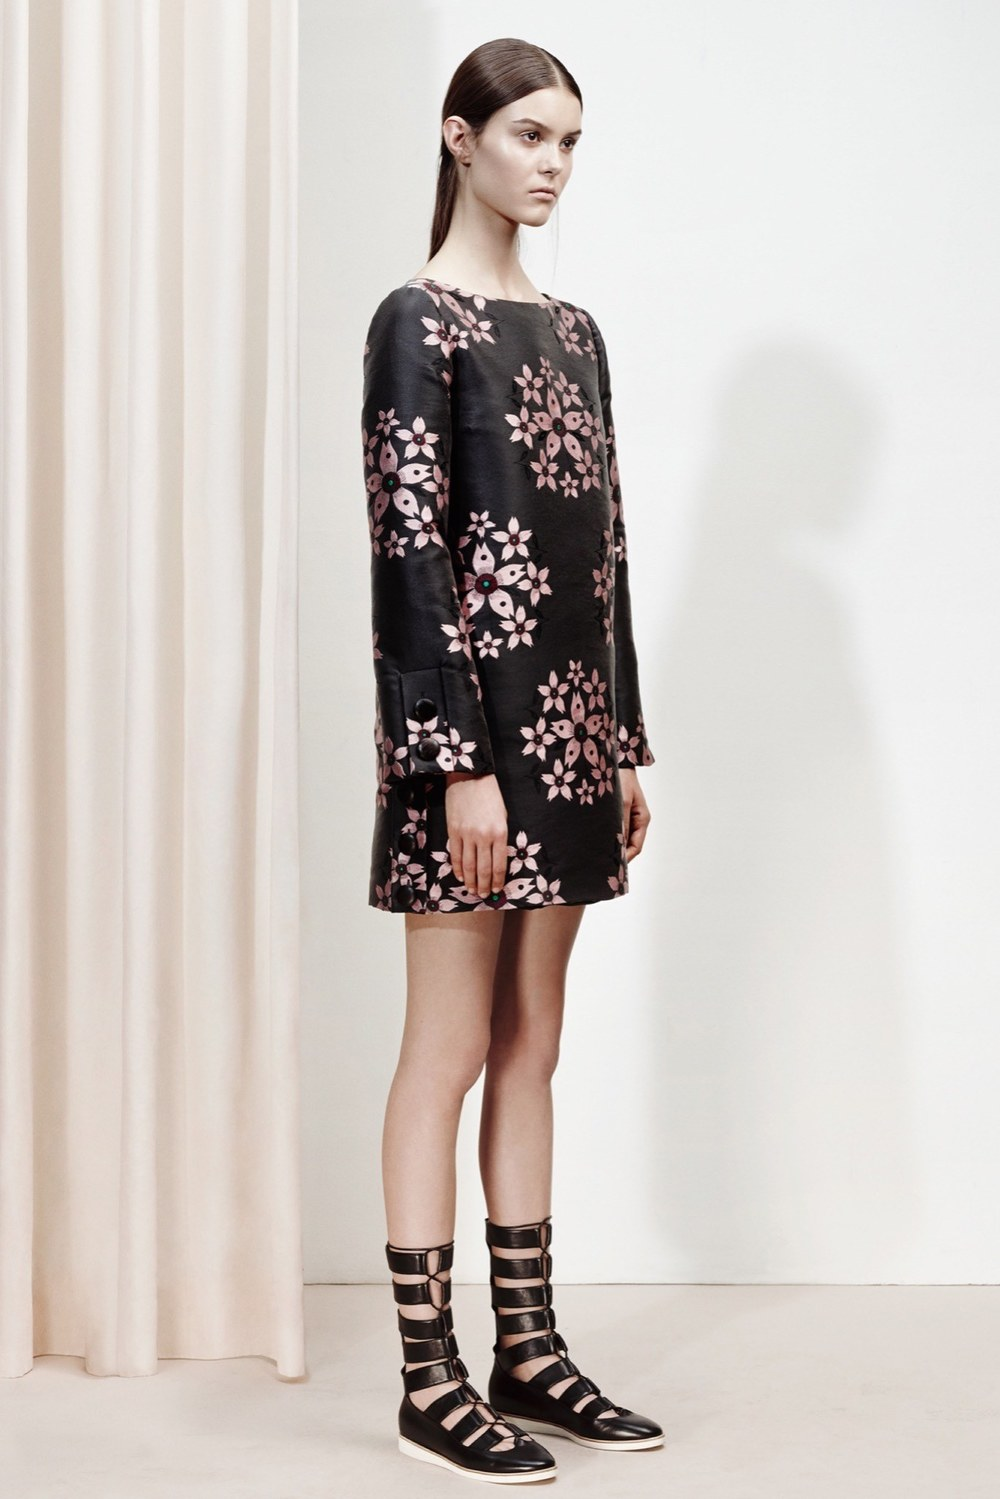 SUNO Resort 2016; source: vogue.com